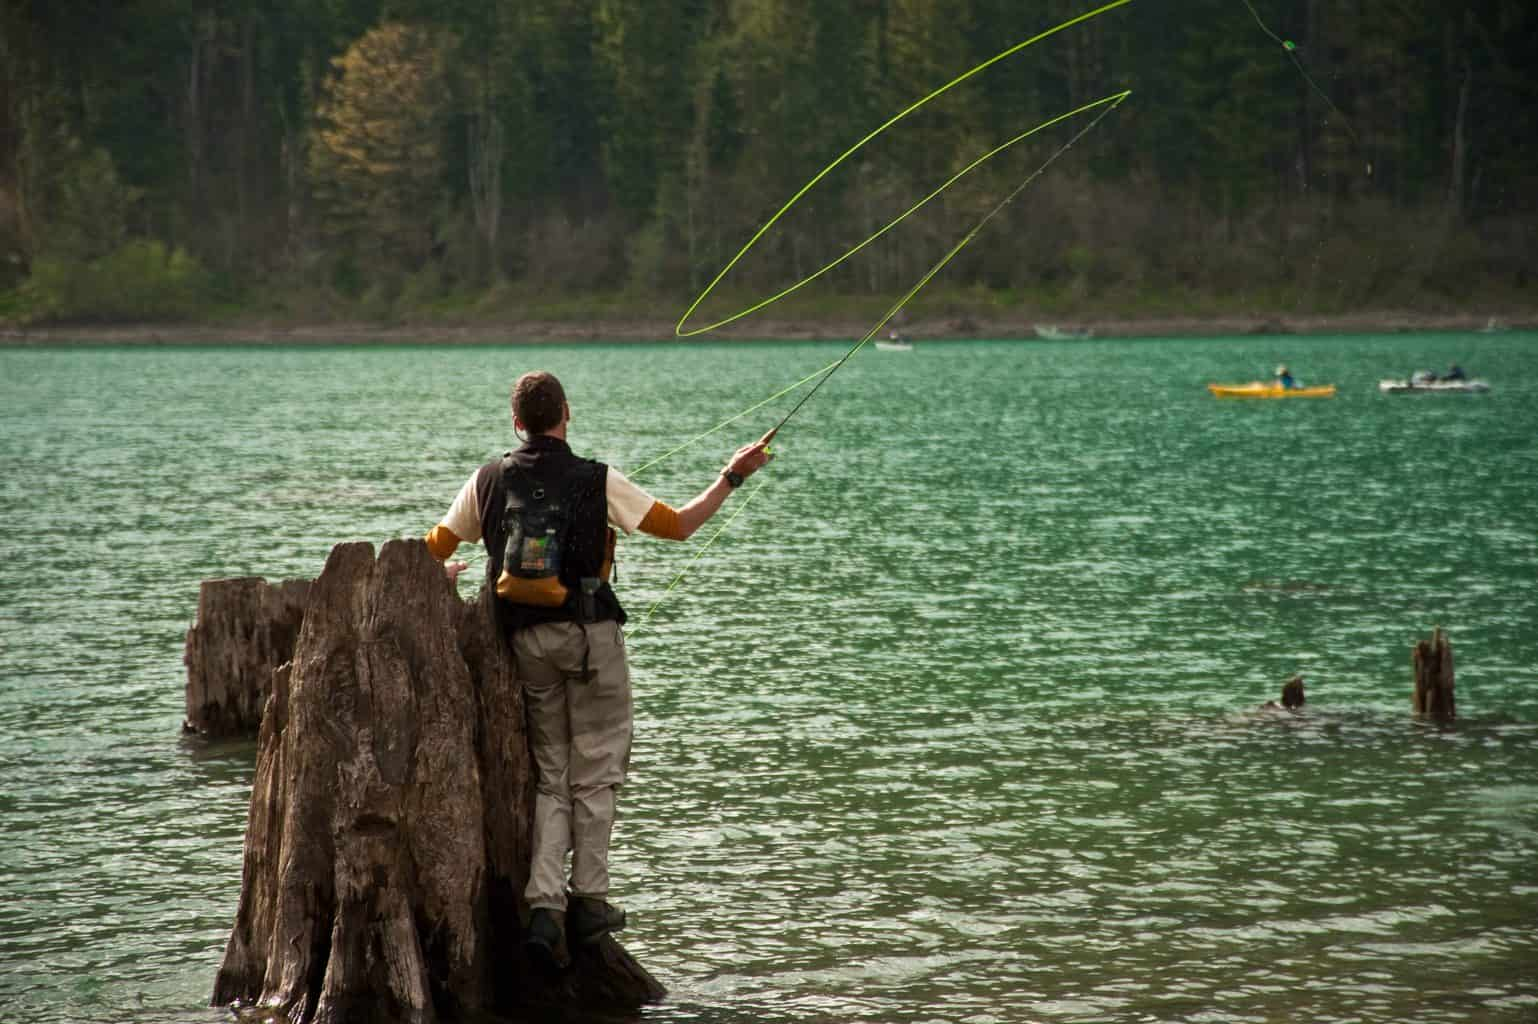 one of the top 10 best fly fishing youtube channels showcasing fly fishing from a tree trunk